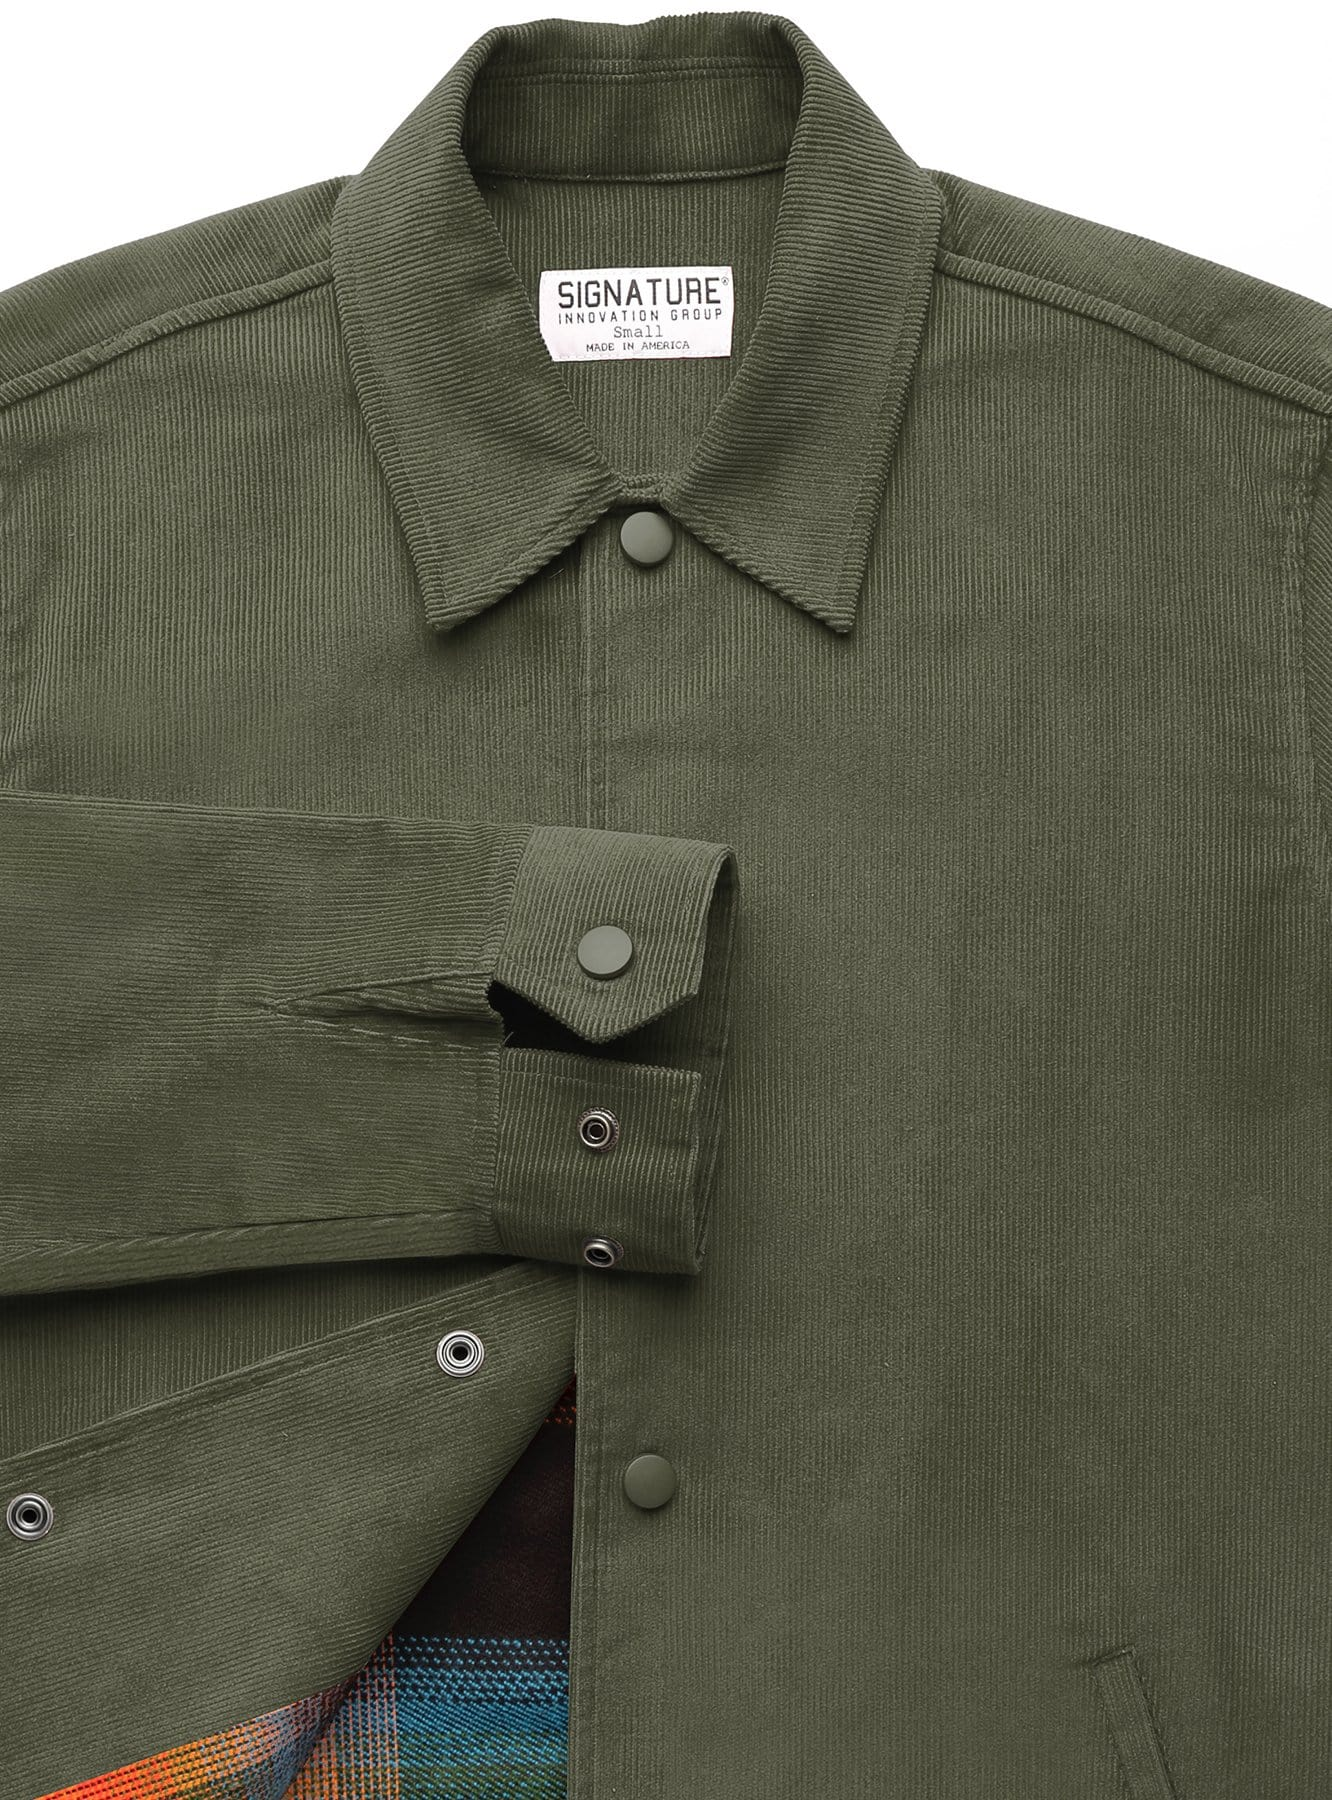 Corduroy Jacket in Olive with Liner